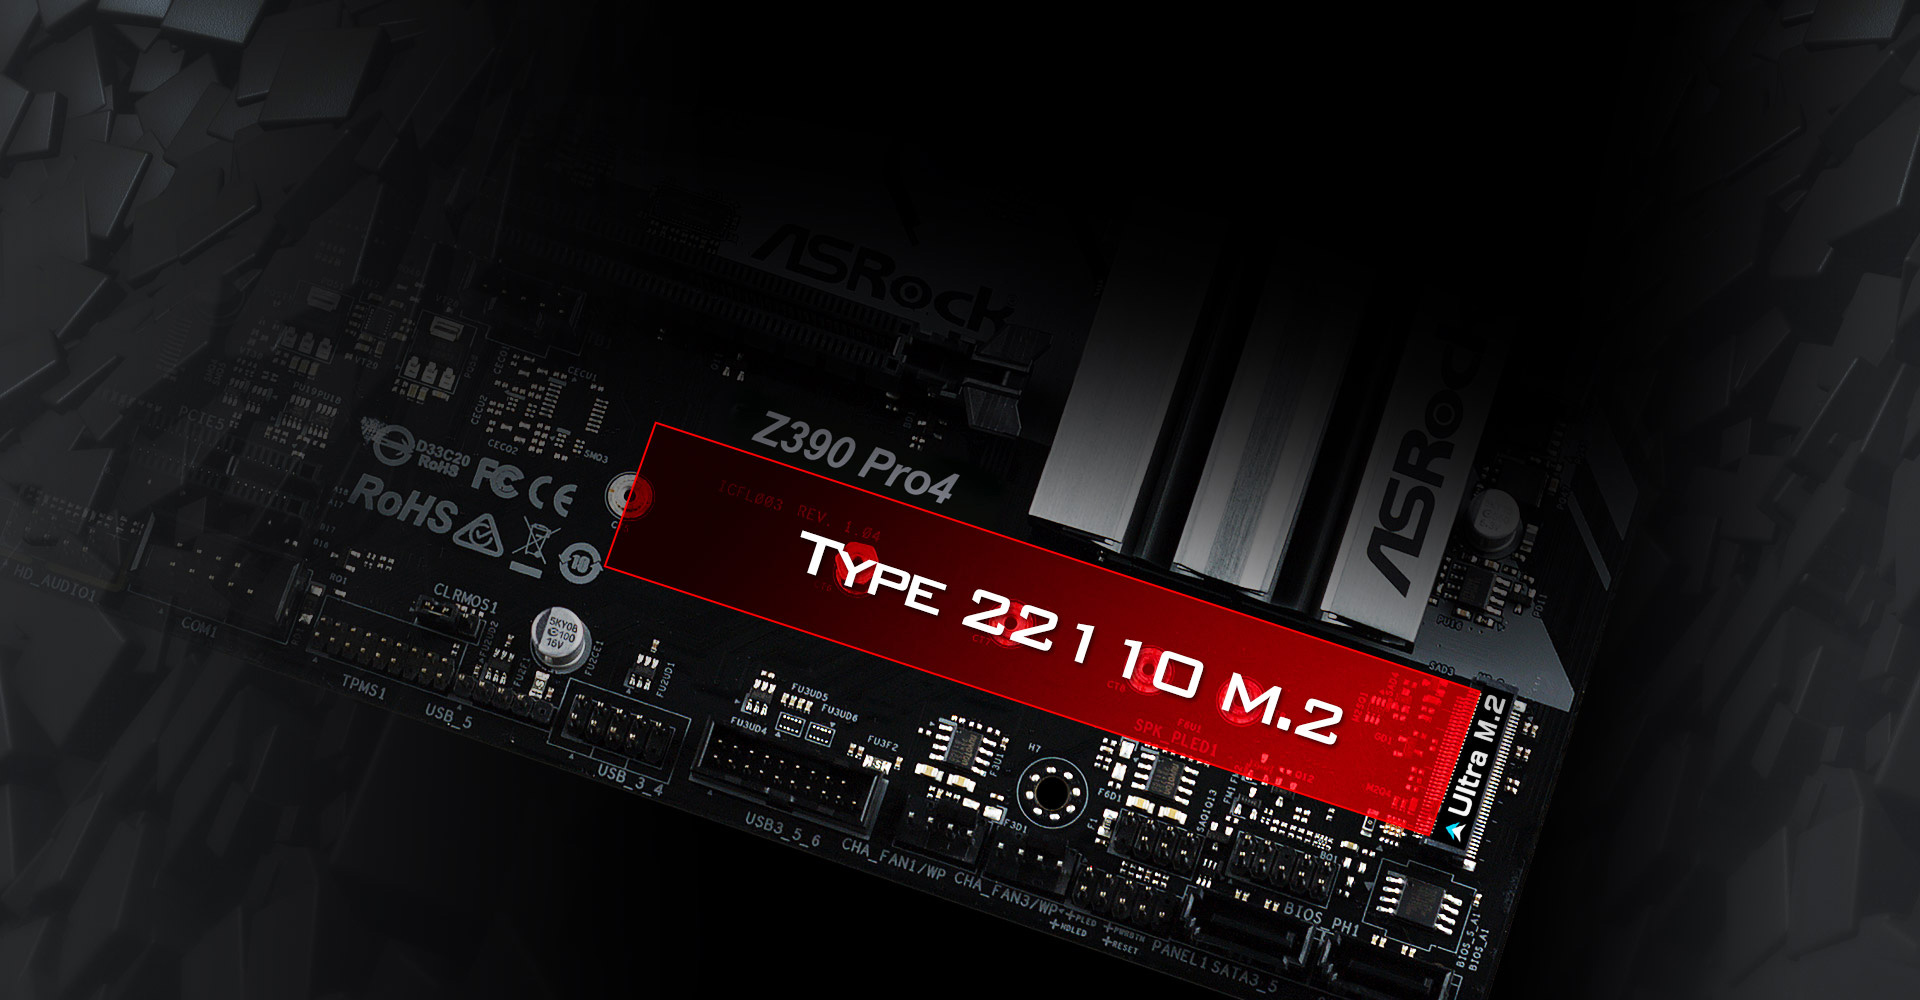 Red Highlight Graphic Showing the Type 22110 M.2 SSD Area on the ASRock Z390 Motherboard